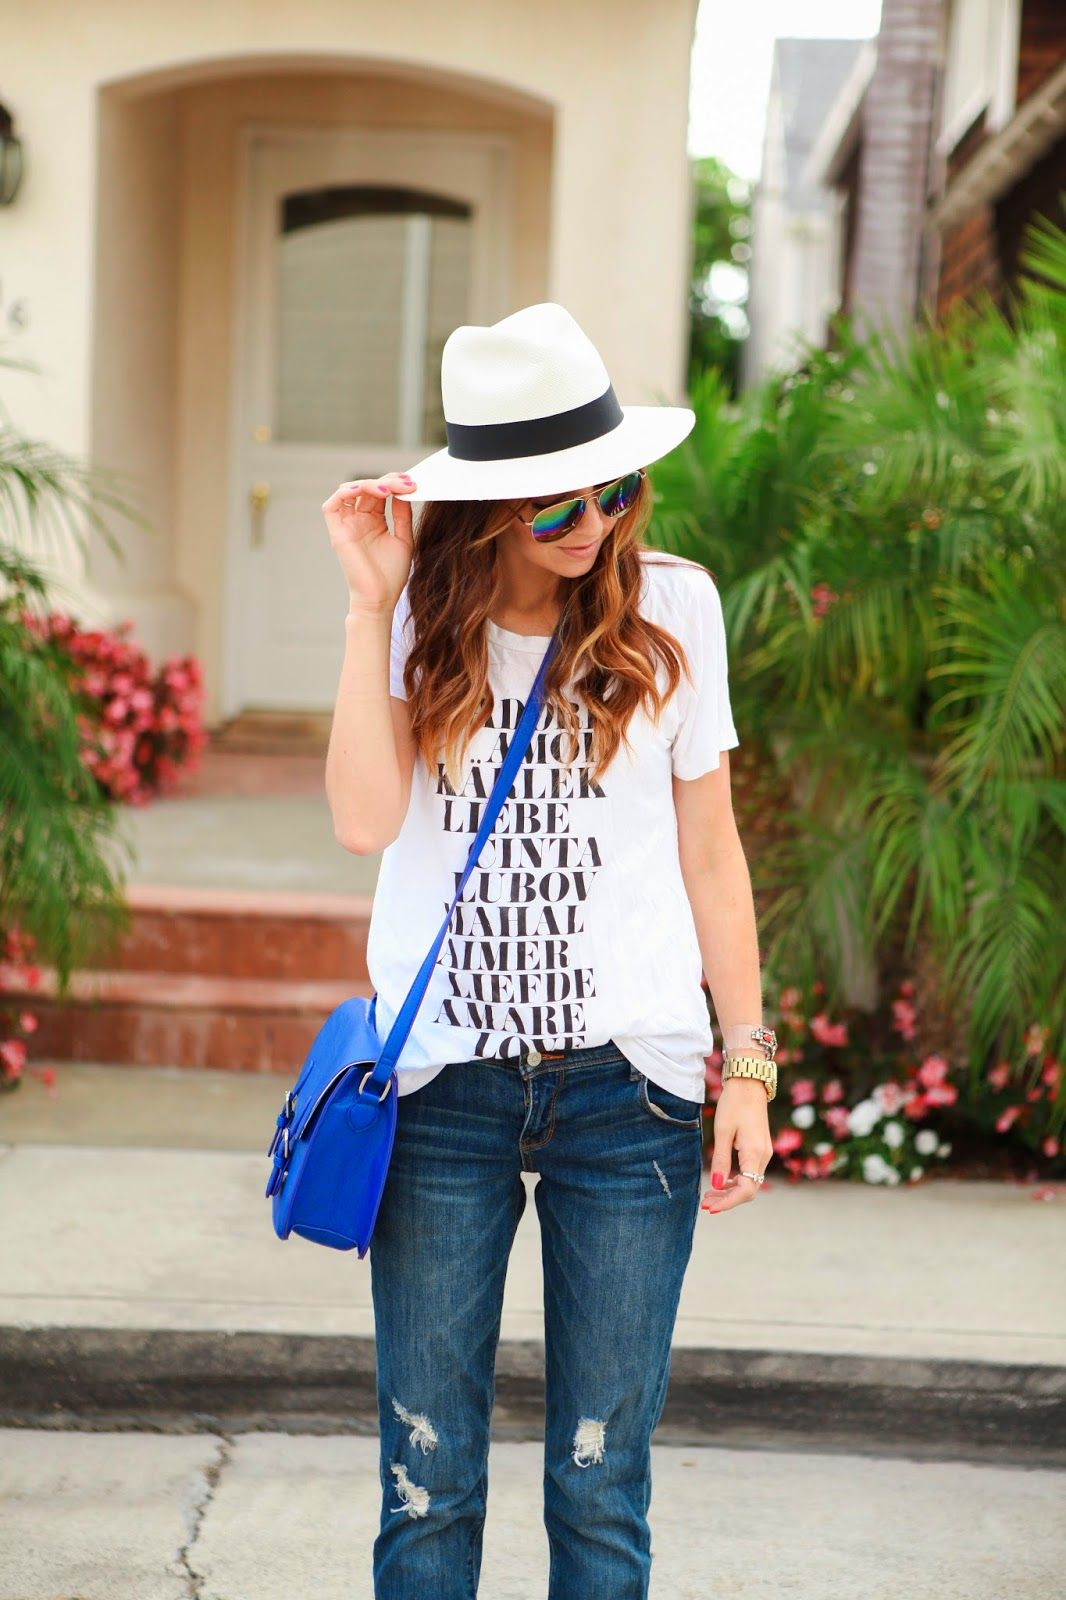 57590bdb Dress up a graphic tee with fun accessories for an effortless date night  look.